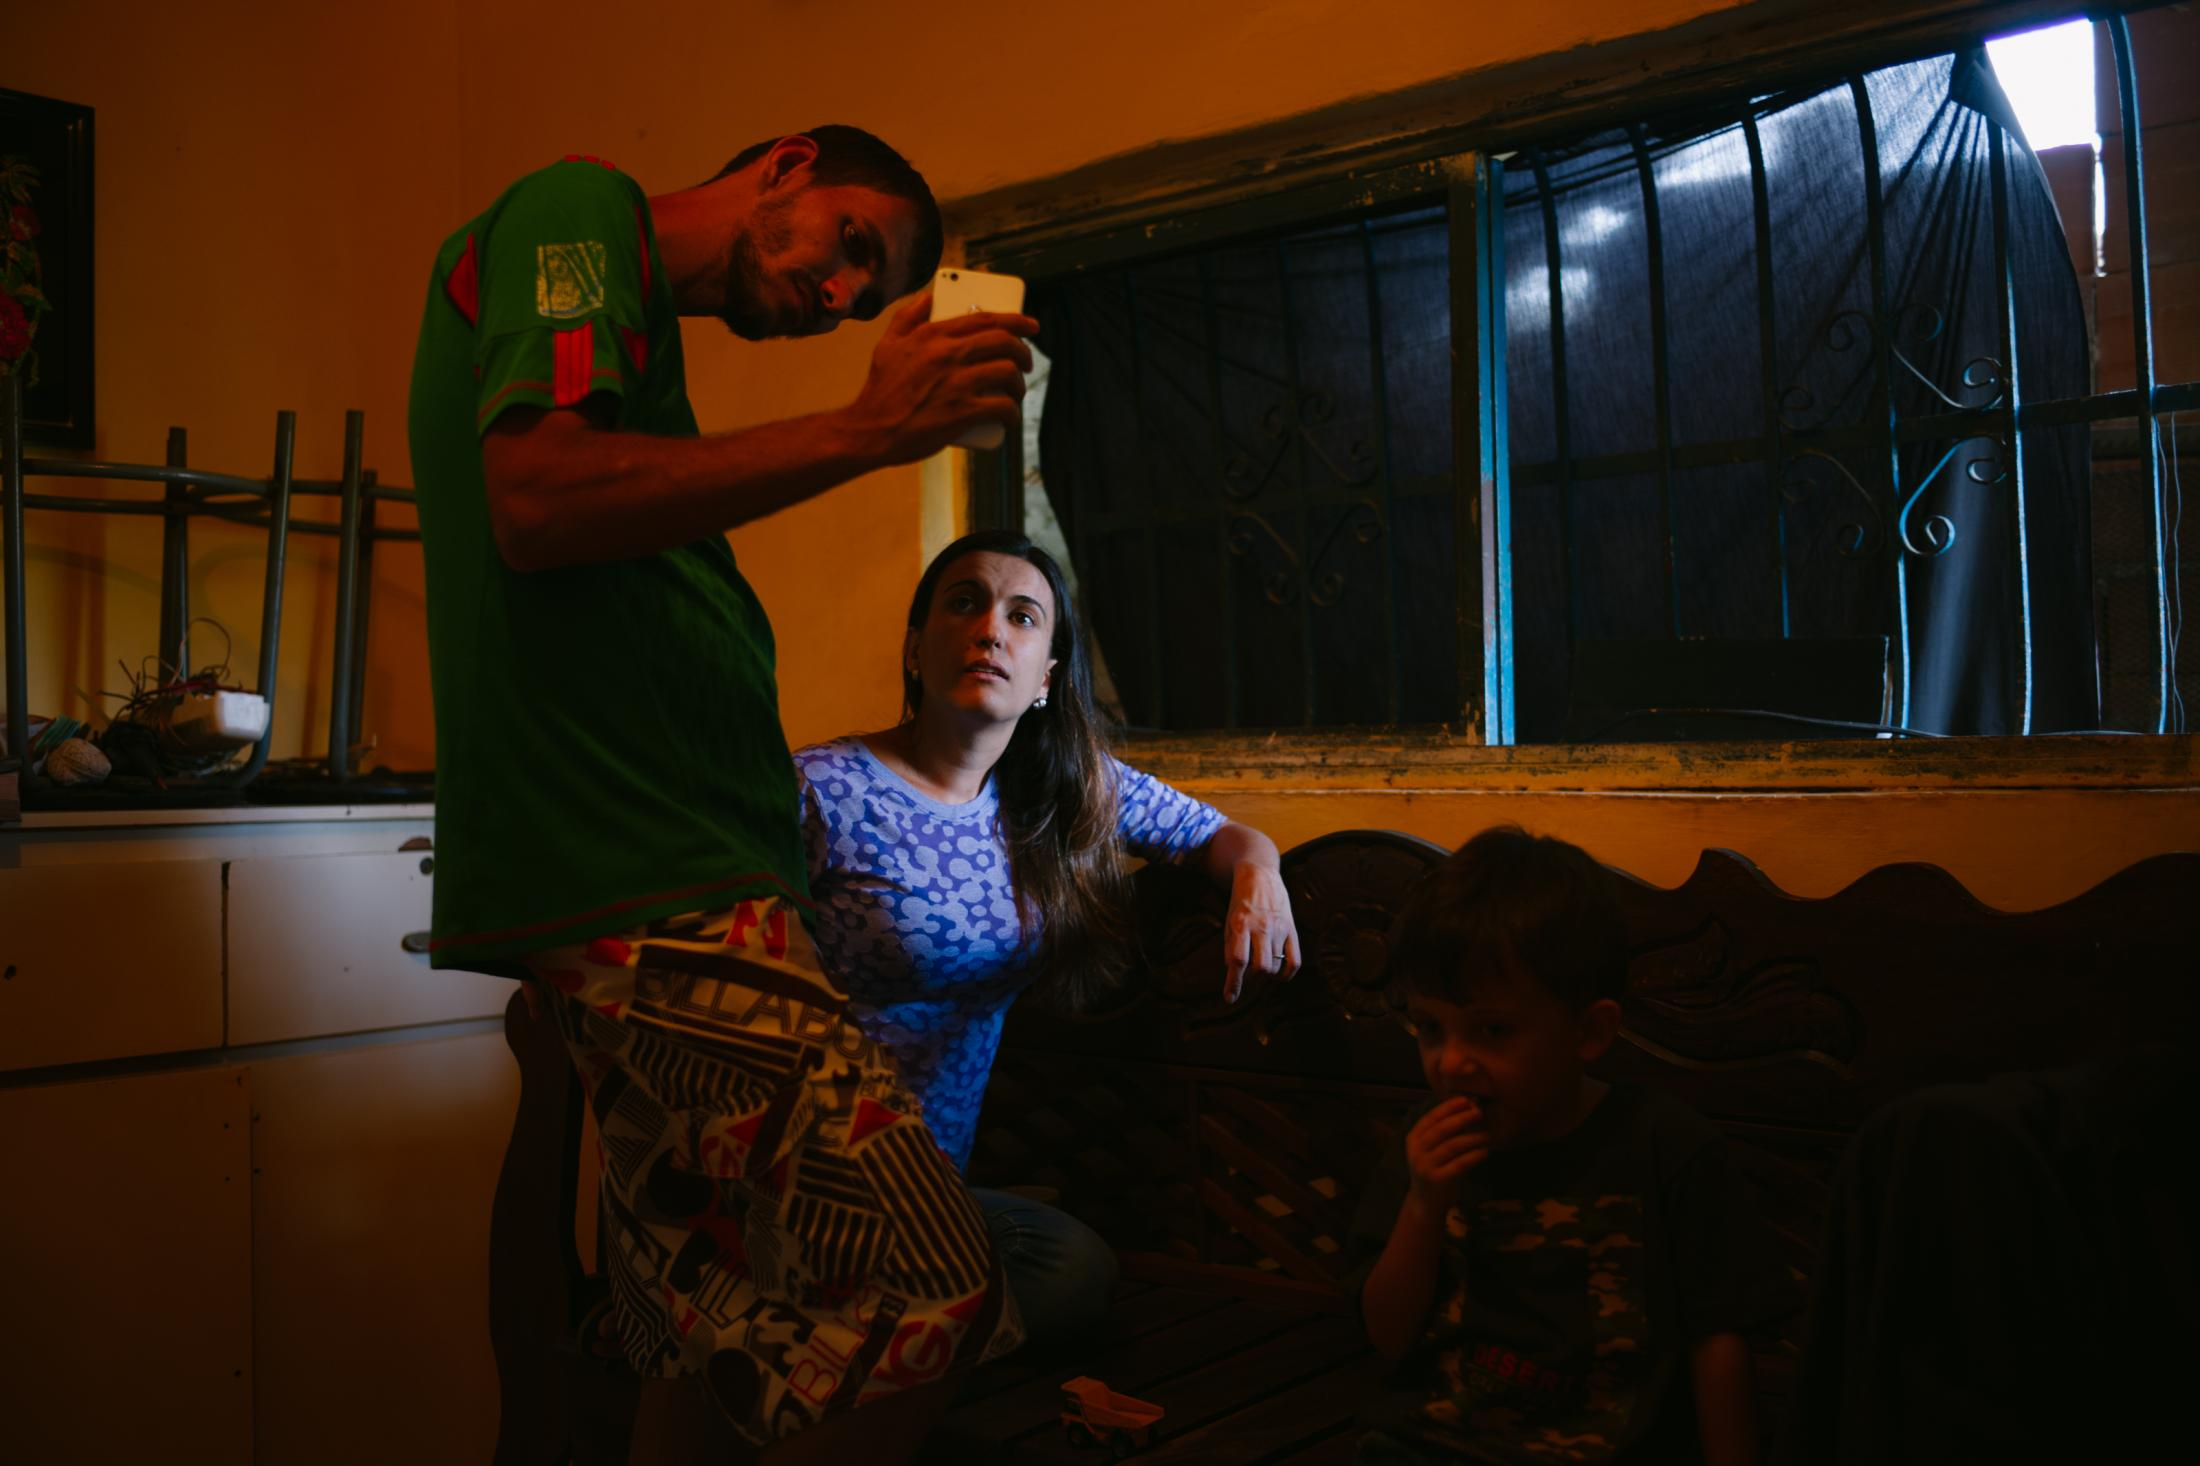 Francisco Aguiar (36) and Liseth Aguiar (31), both born in Venezuela, are video chatting with their parents and siblings who were already in Madeira. Liseth Aguiar died on May 10 2019 in Venezuela with hepatitis due to lack of treatment available in the country. Las Tunitas, La Guaira, Venezuela. 28th February, 2019. This was in the family house. Carlos and Rita (Liseth and Francisco´s parents) left it when they moved to Madeira in August 2017. The family is not only spatially divided: children of Portuguese immigrants are considered Portuguese in Venezuela, even if they were born there, and conversely, after decades abroad, Portuguese are considered foreigners when they return home.